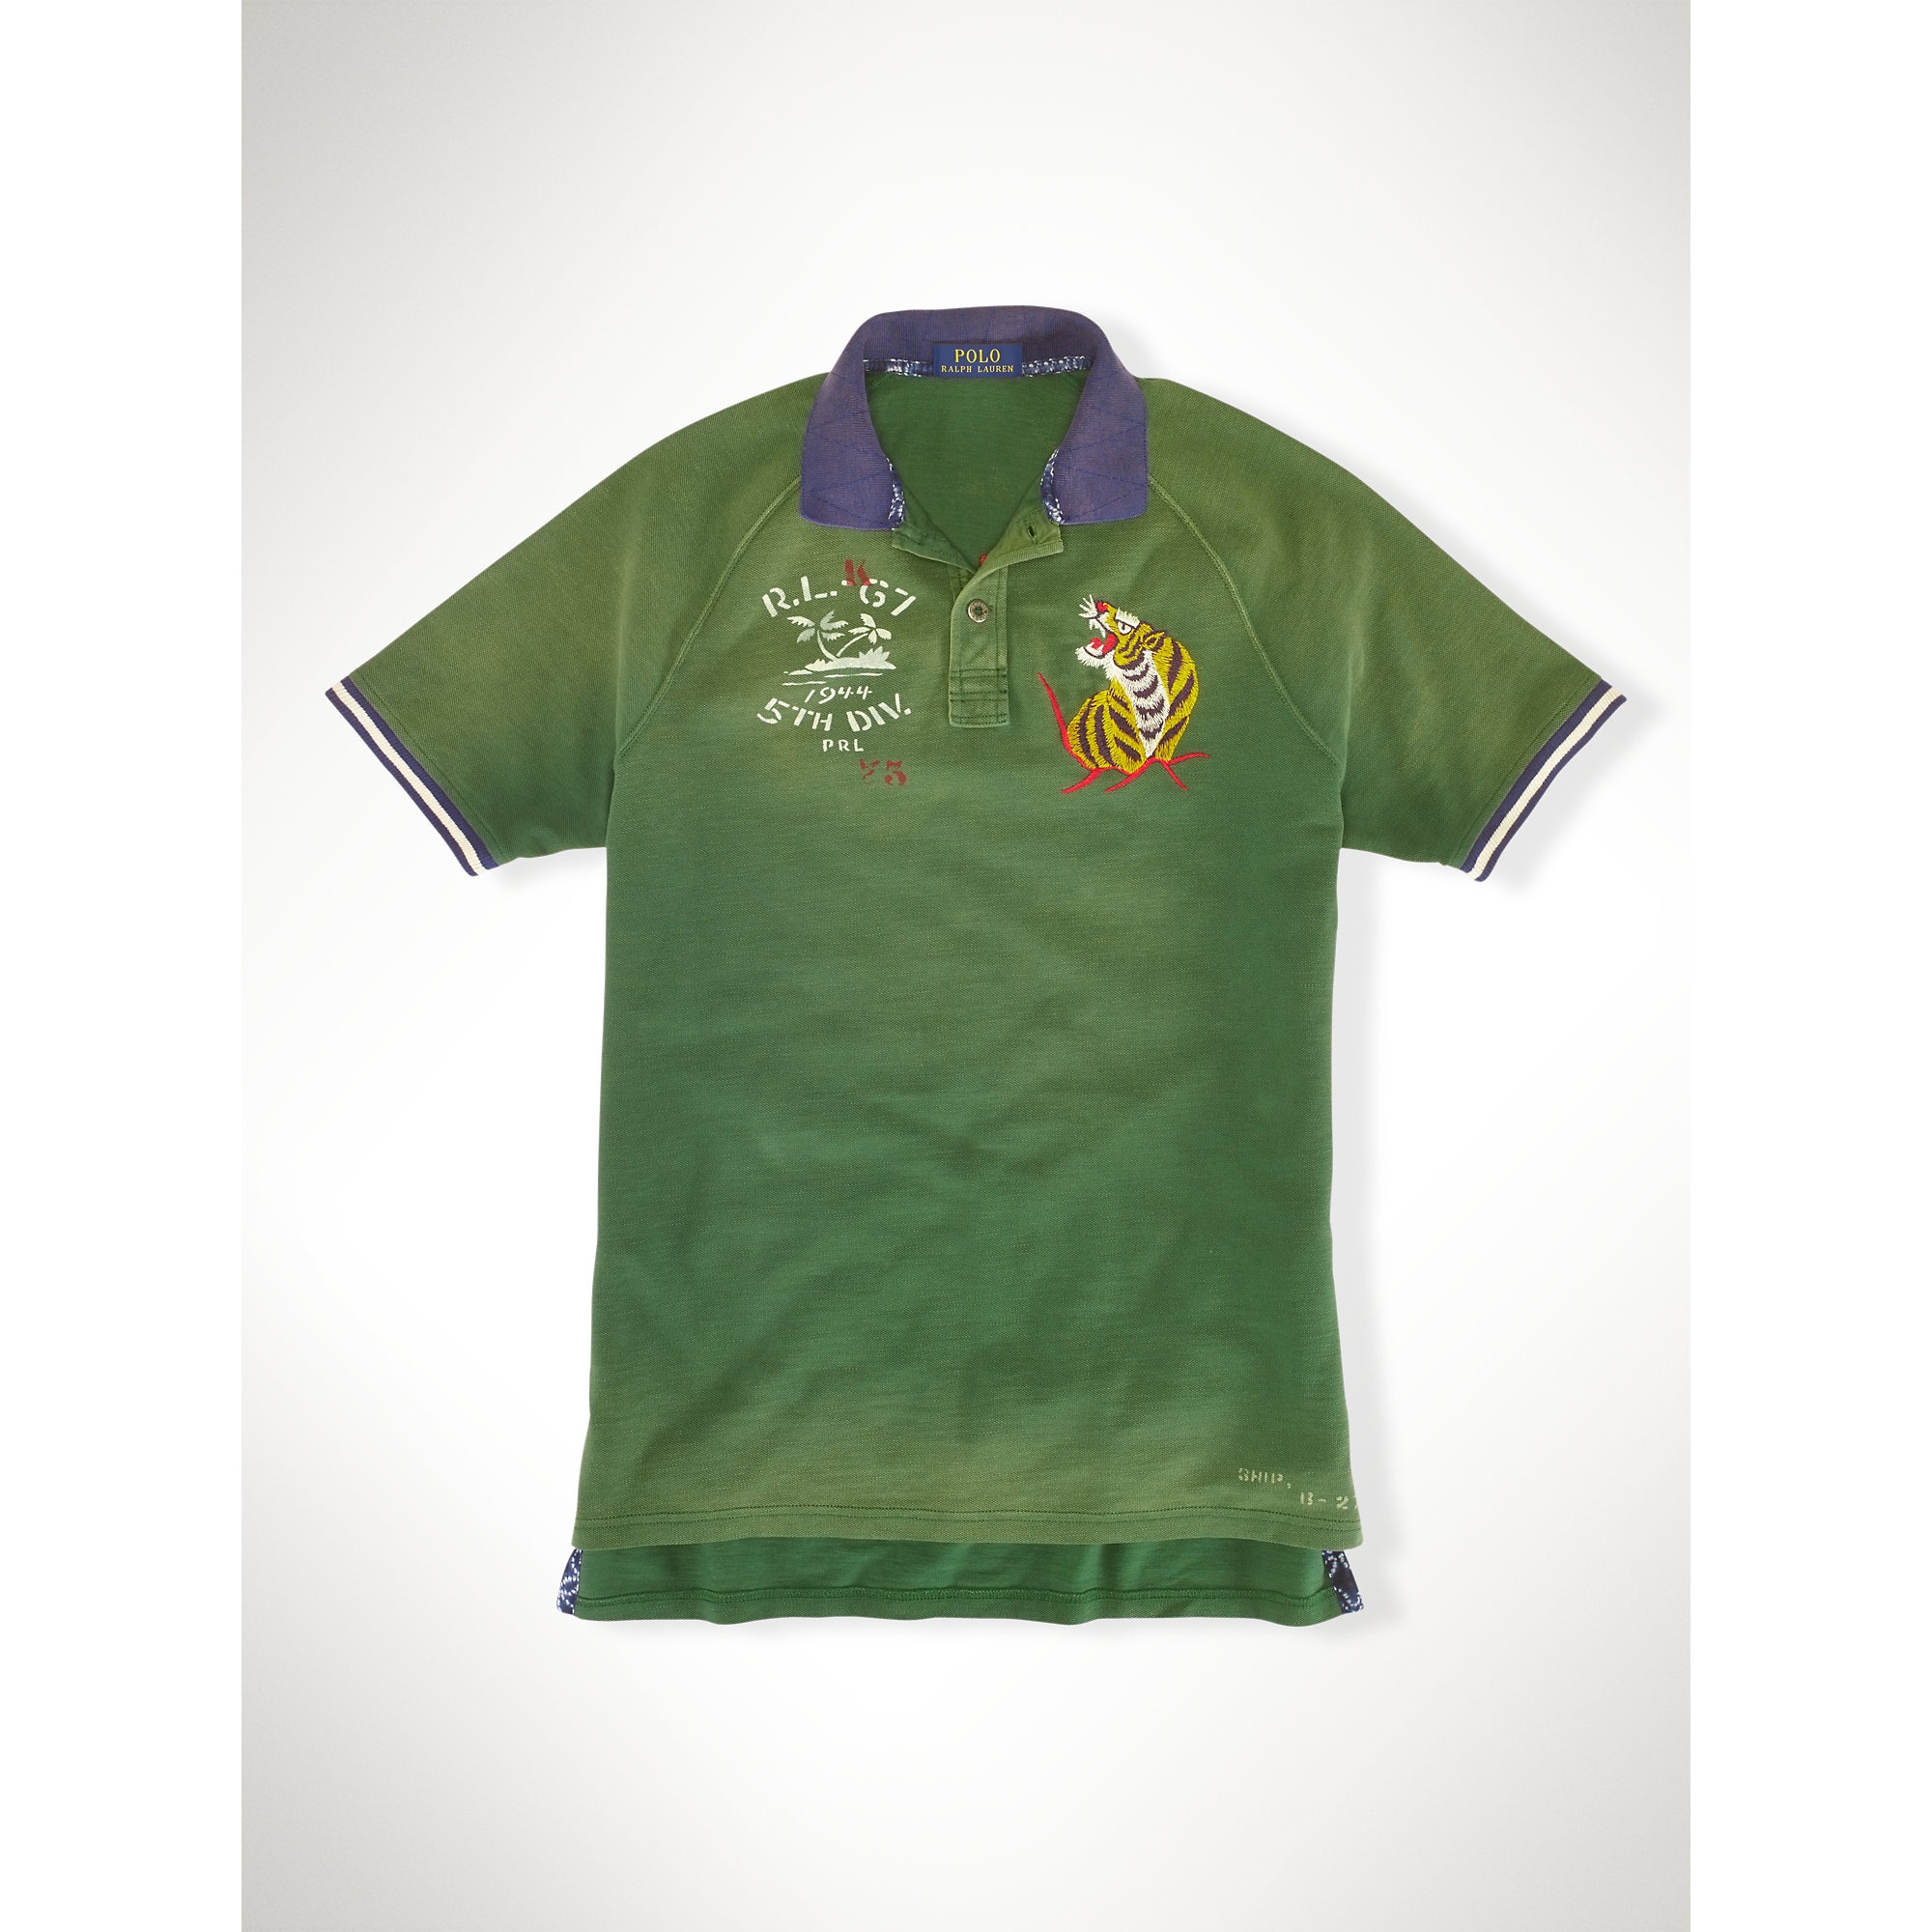 Lyst polo ralph lauren custom fit tiger polo shirt in for The tour jacket polo shirt